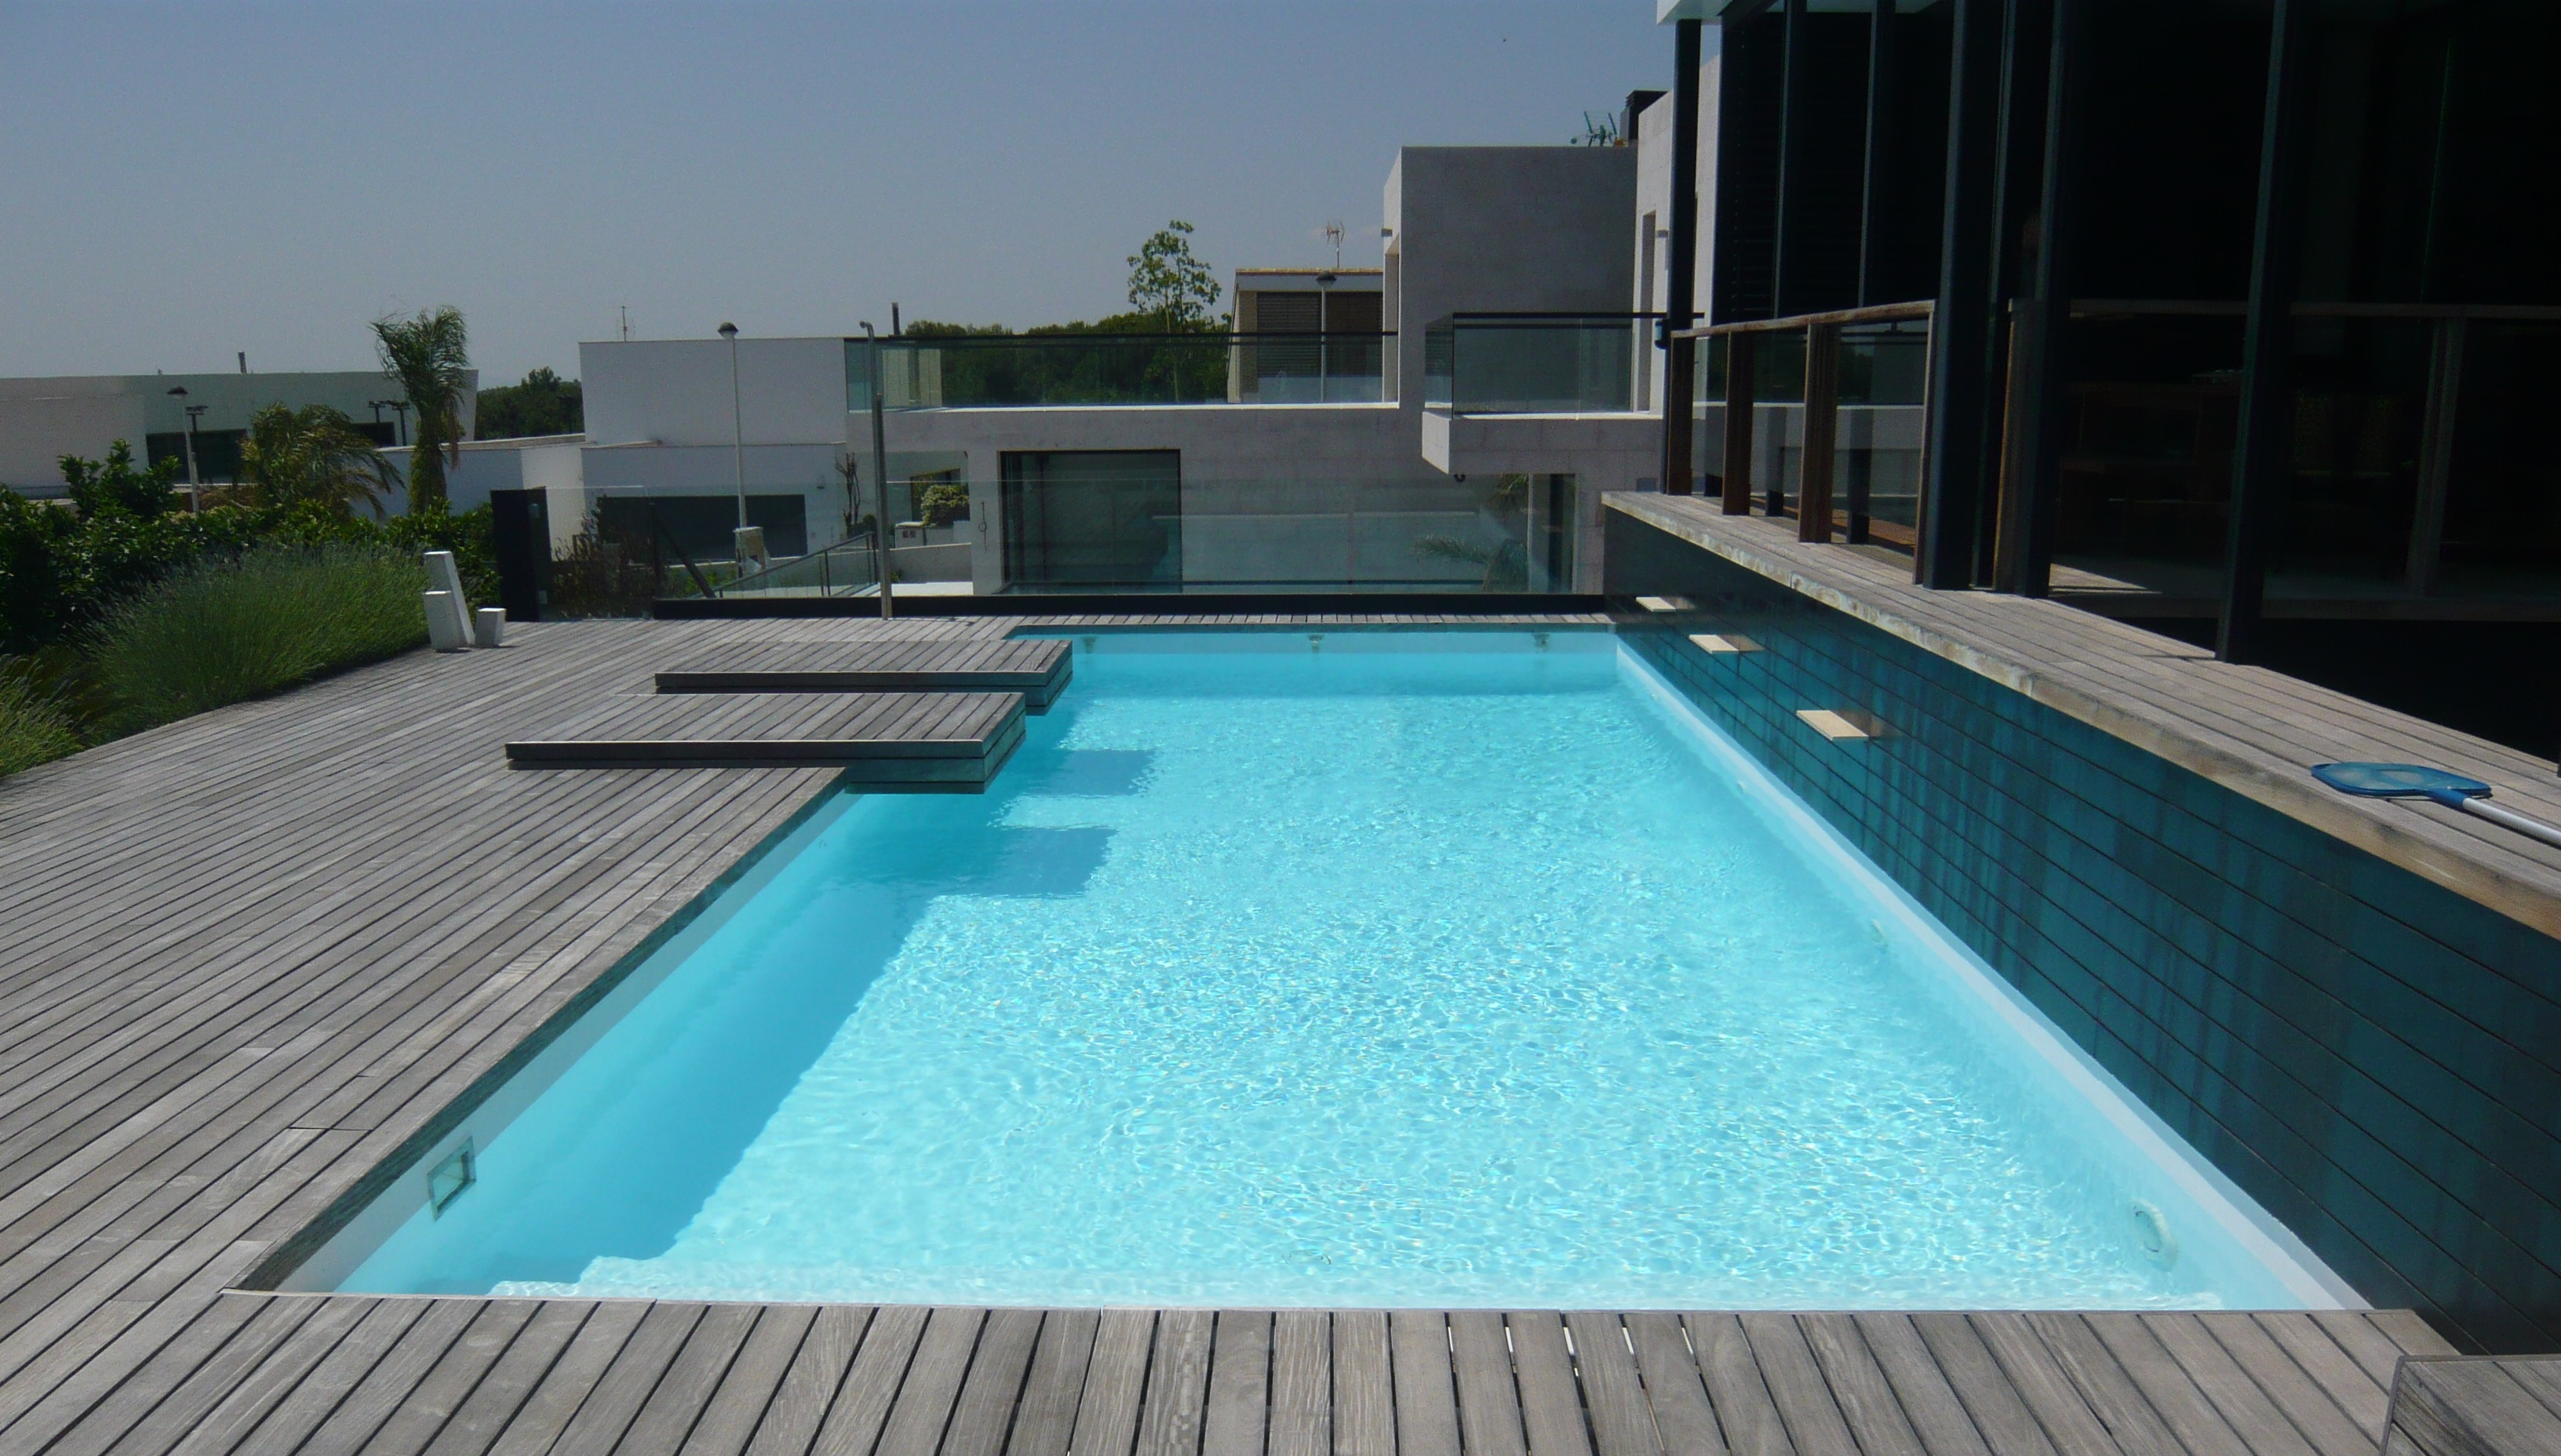 Topciment wooden microcement pool